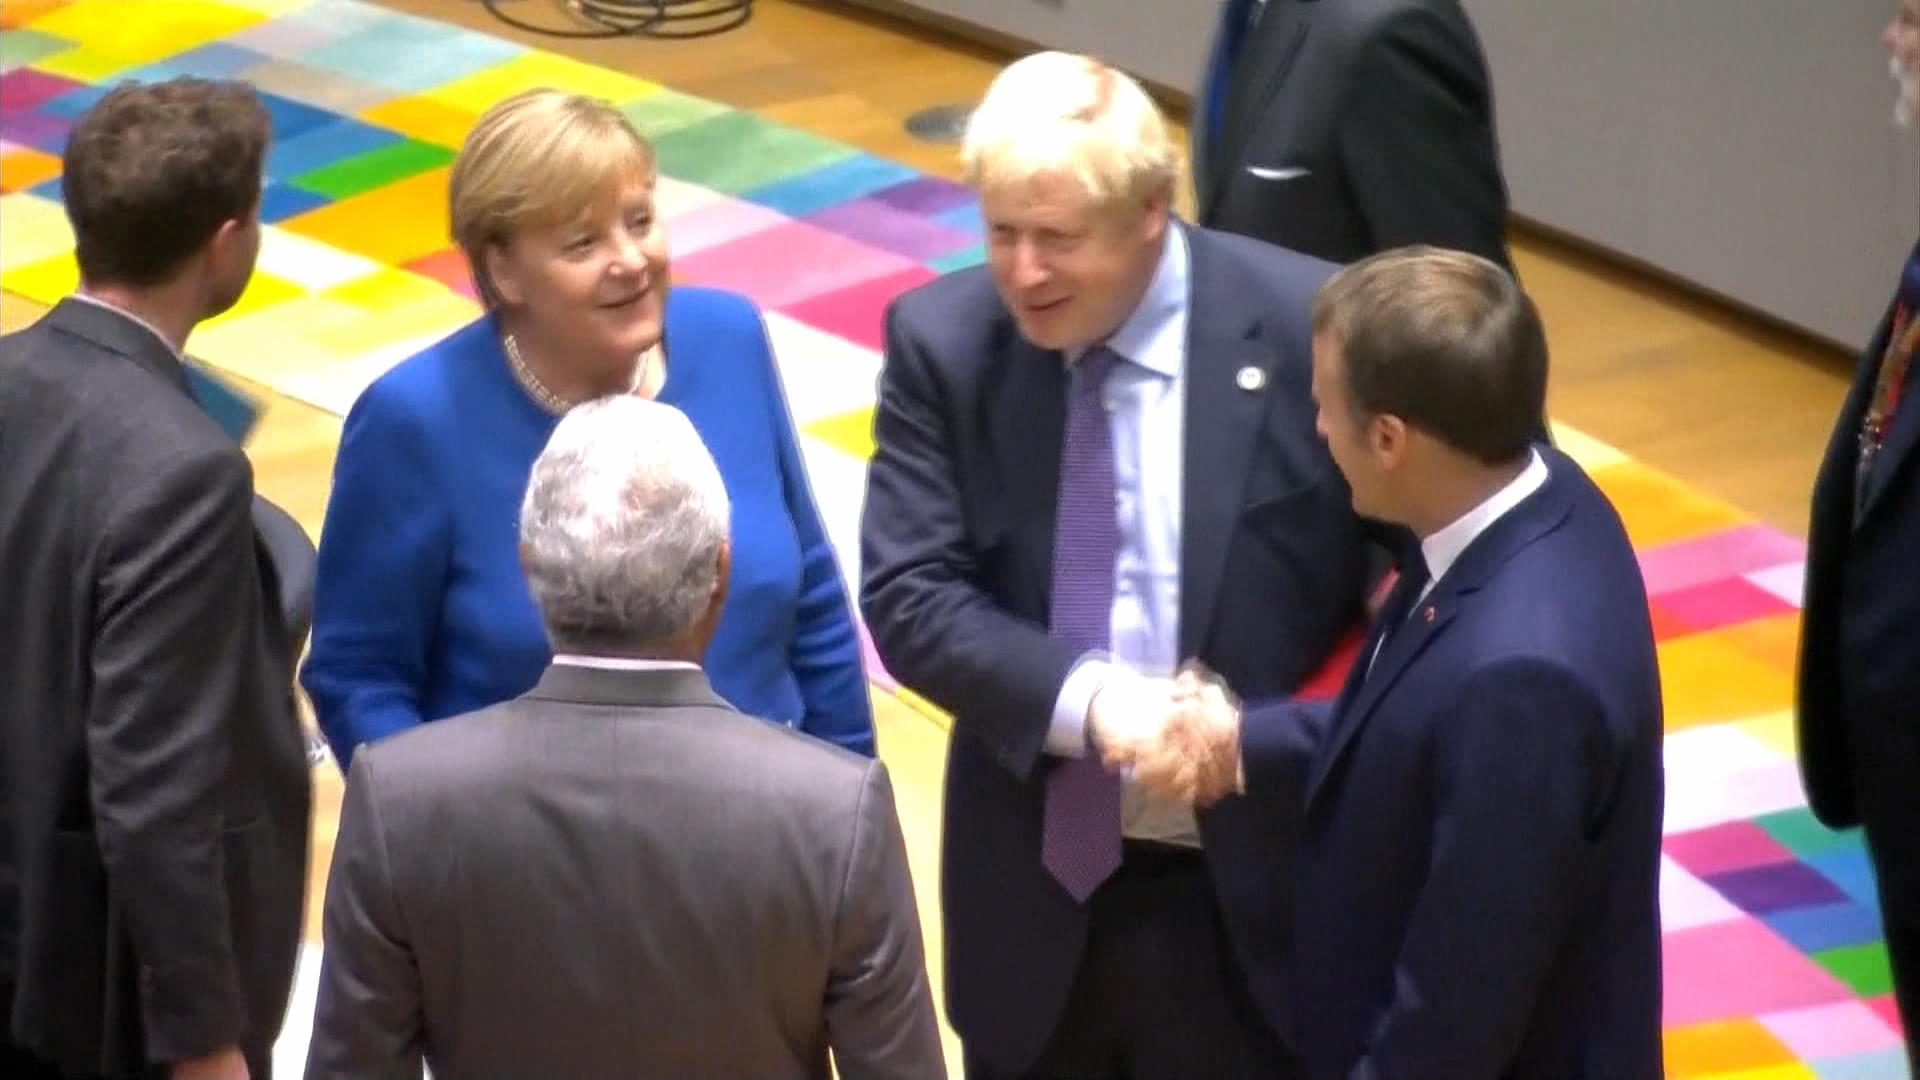 Boris Johnson EU Victory Lap: Back-Slaps, High-Fives, Bro-Hugs From Merkel, Macron, Tusk and Others